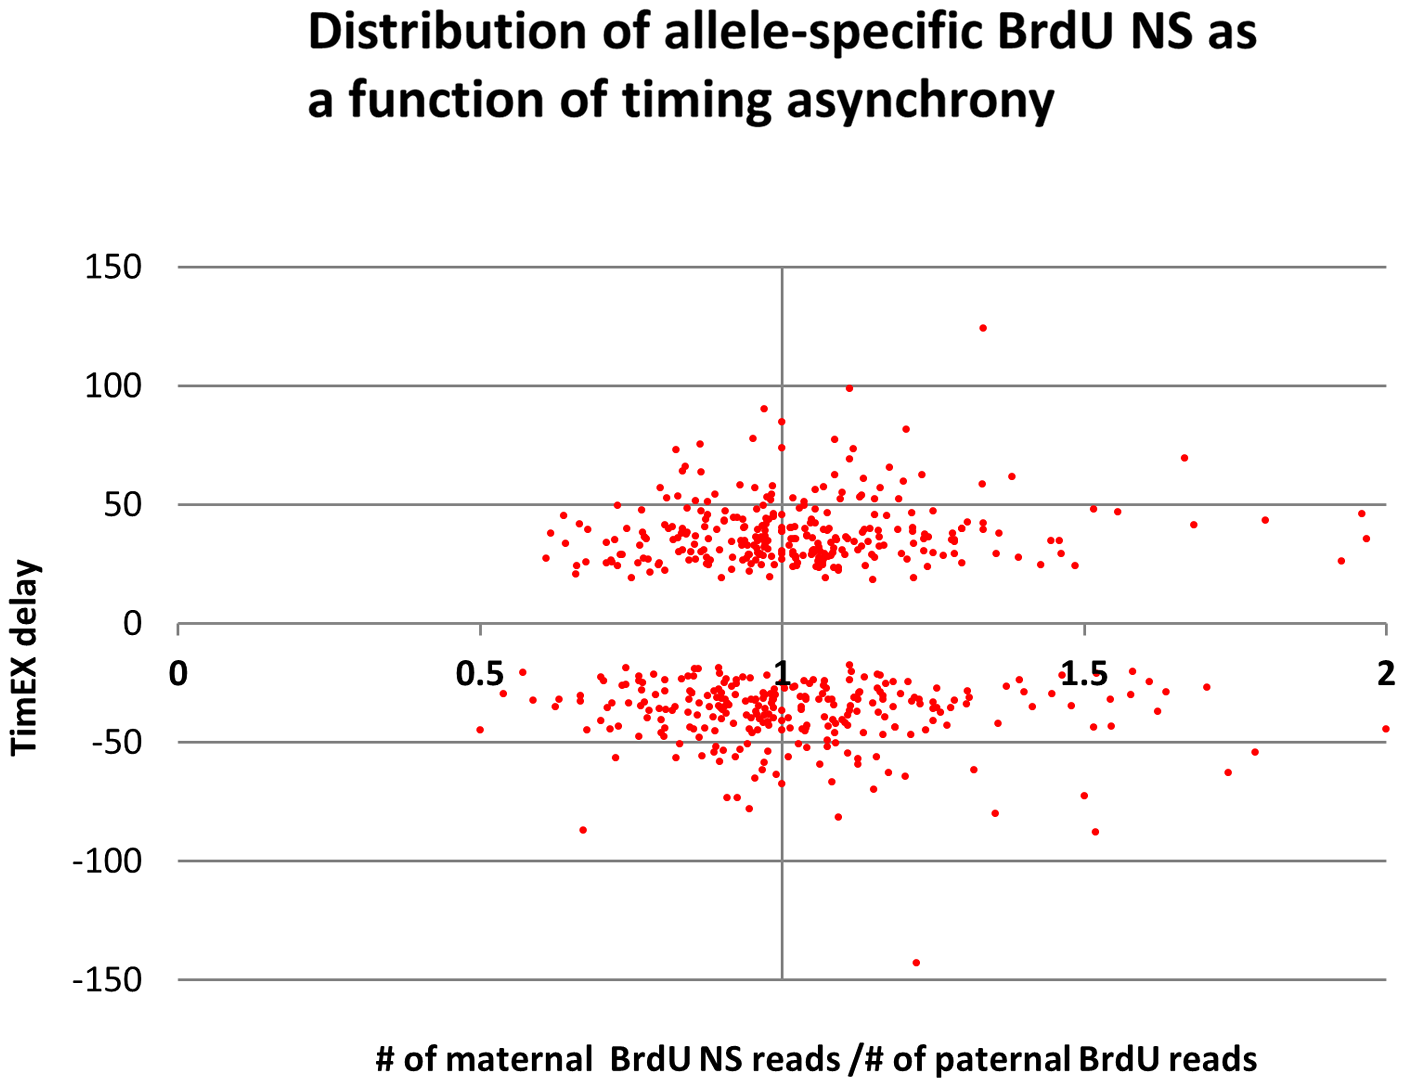 Distribution of allele-specific BrdU NS as a function of timing asynchrony.